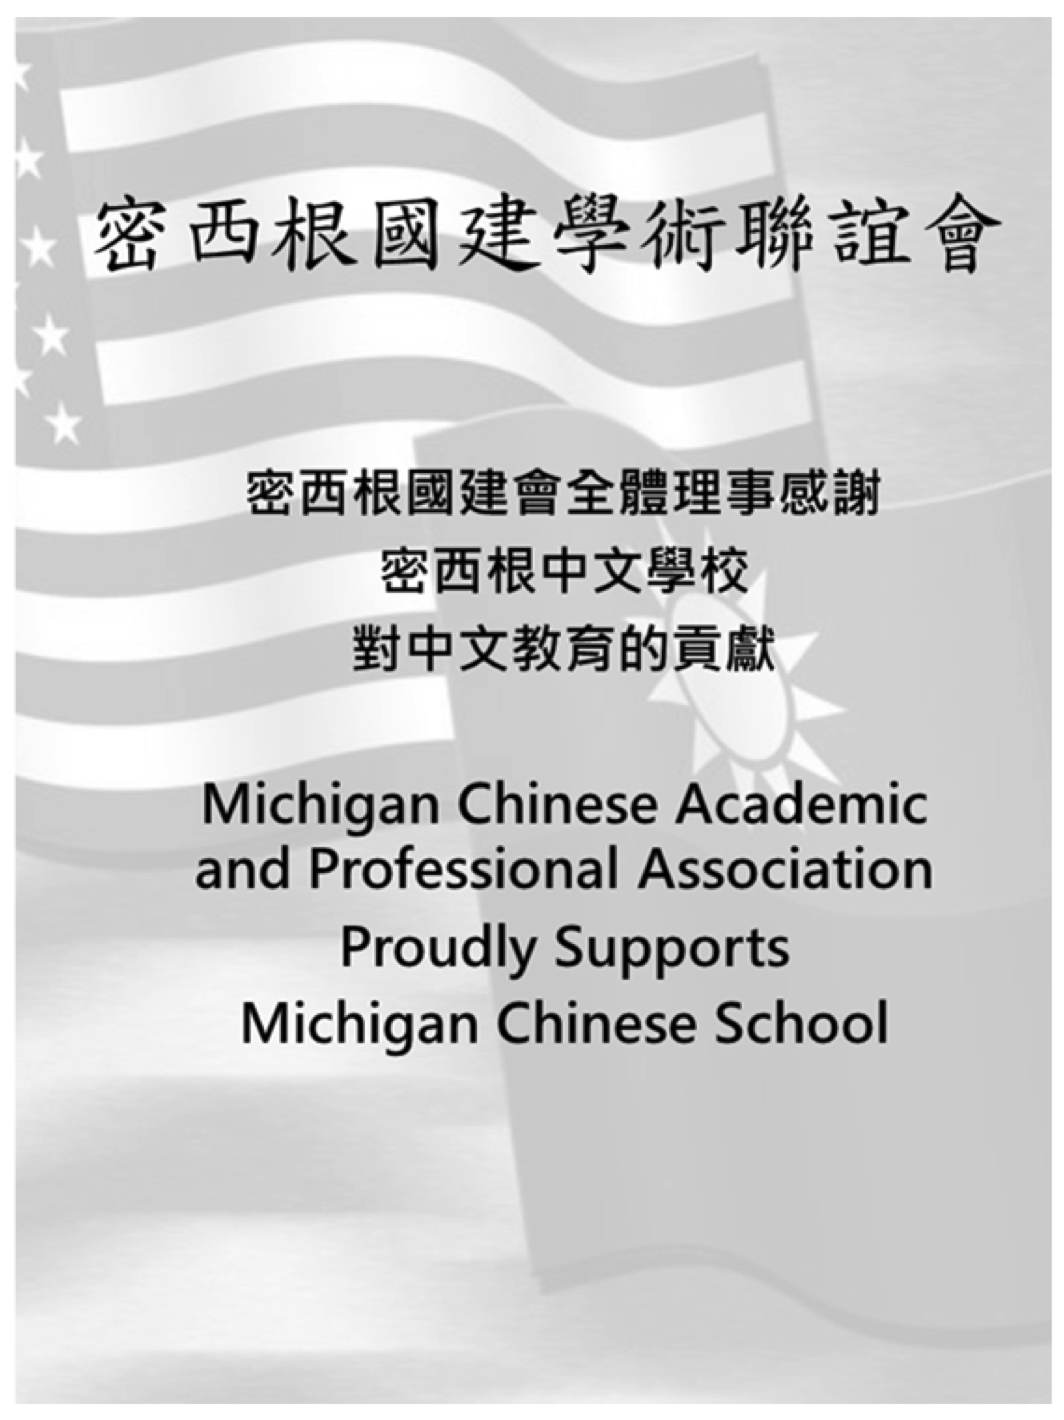 MichiganChineseAcademic